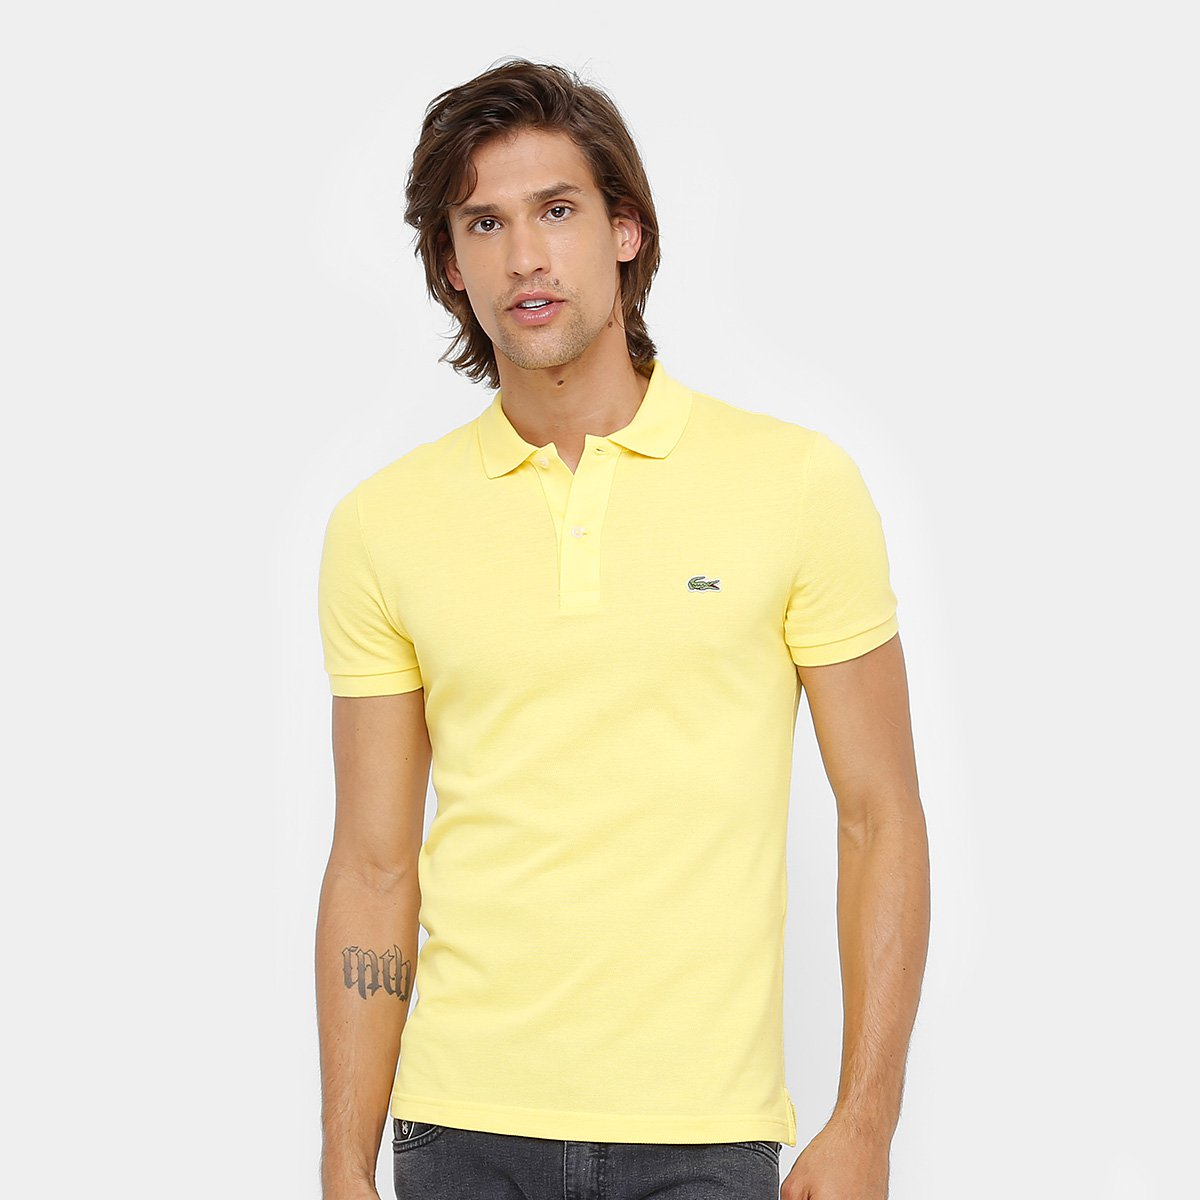 5daab71be6 Camisa Polo Lacoste Piquet Slim Fit Masculina